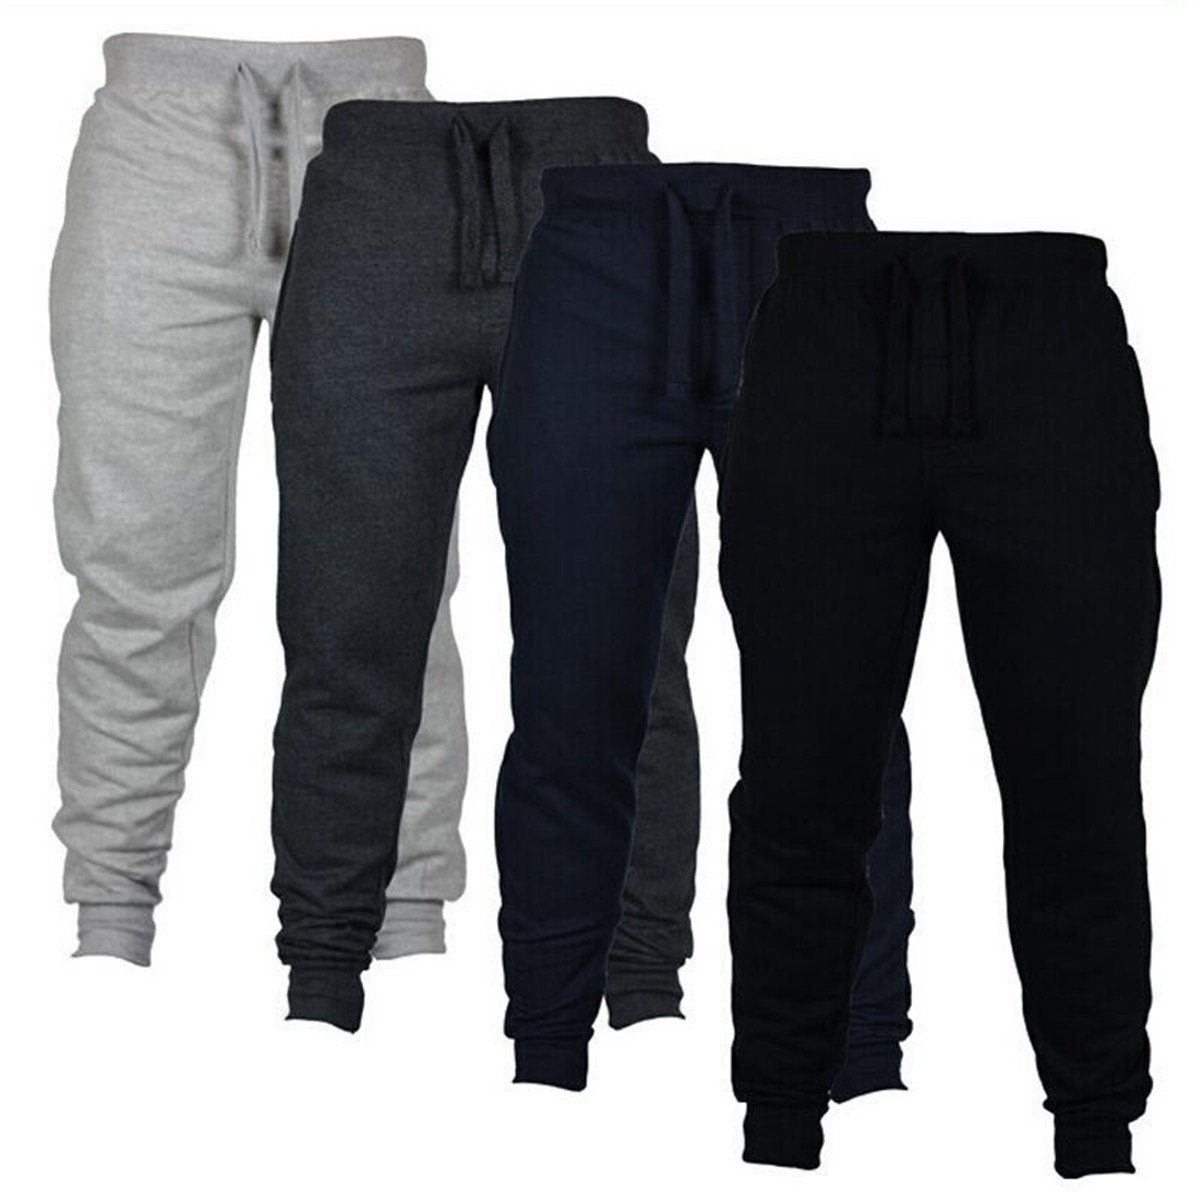 21f18c792a9d0 BININBOX Men's Fitted Bodybuilding Workout Gym Running Casual Jogger Harem  Pants Trousers Sweatpants